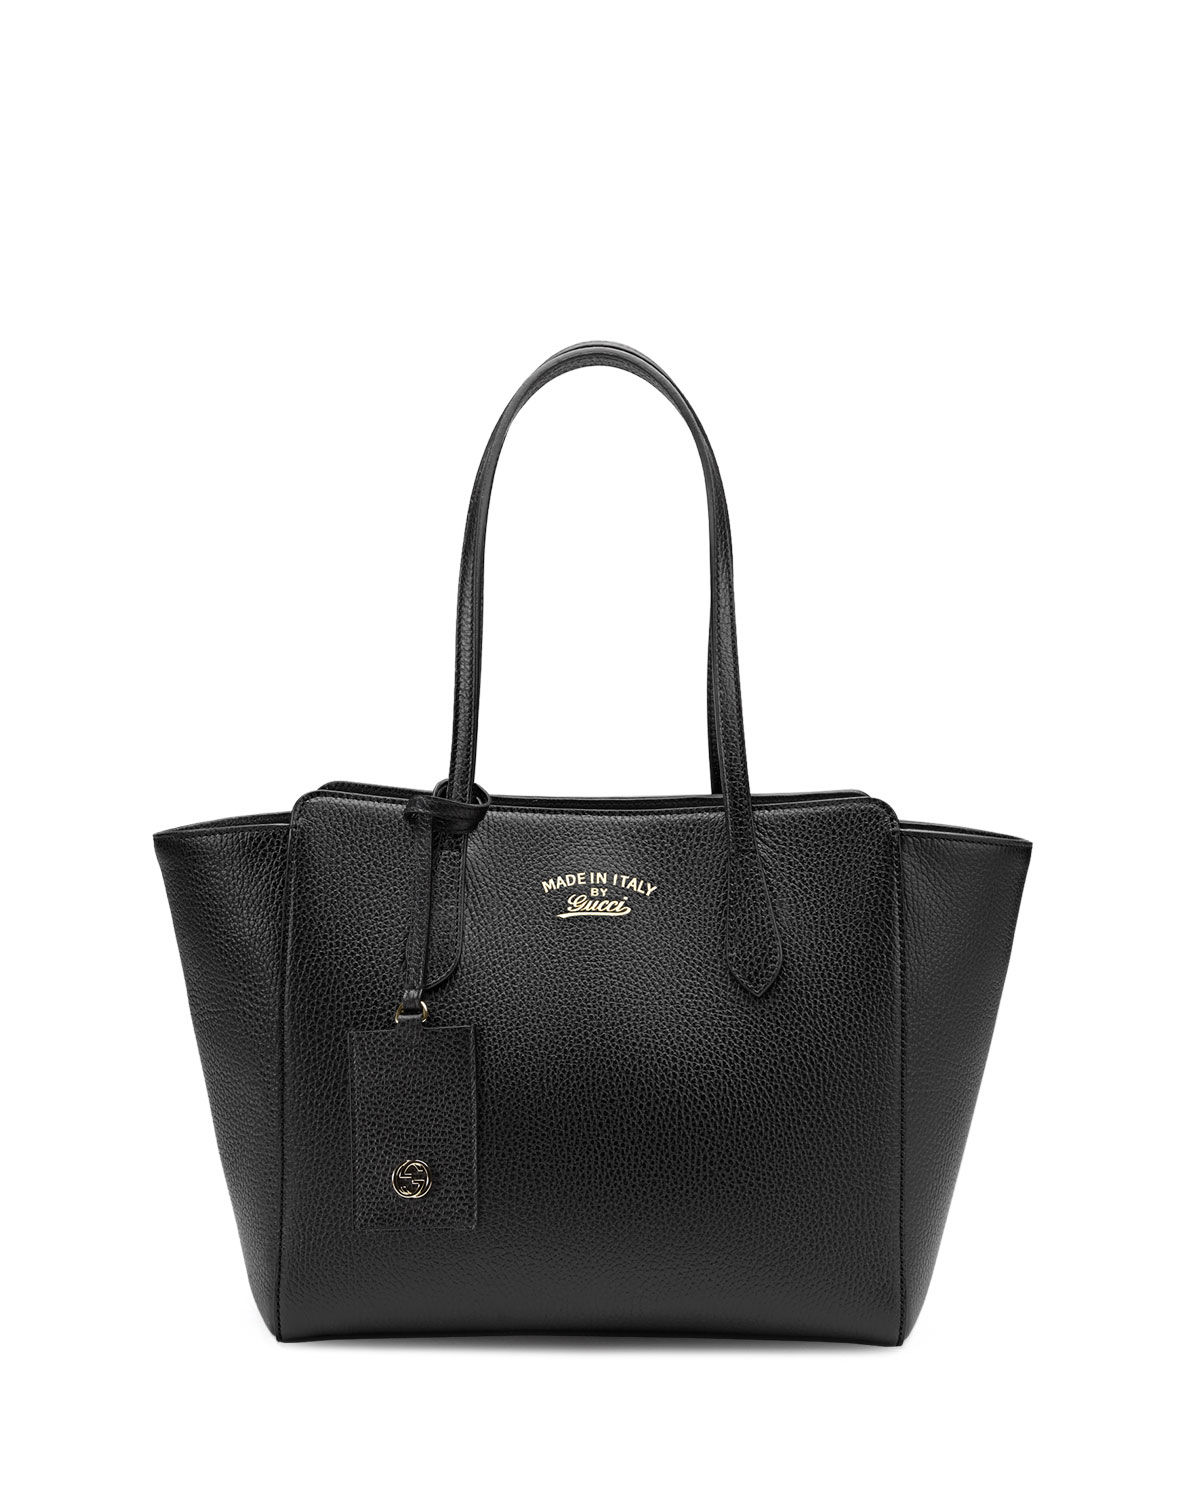 5bd973a8b5c4 Gucci Swing Small Leather Tote Bag, Black | Neiman Marcus